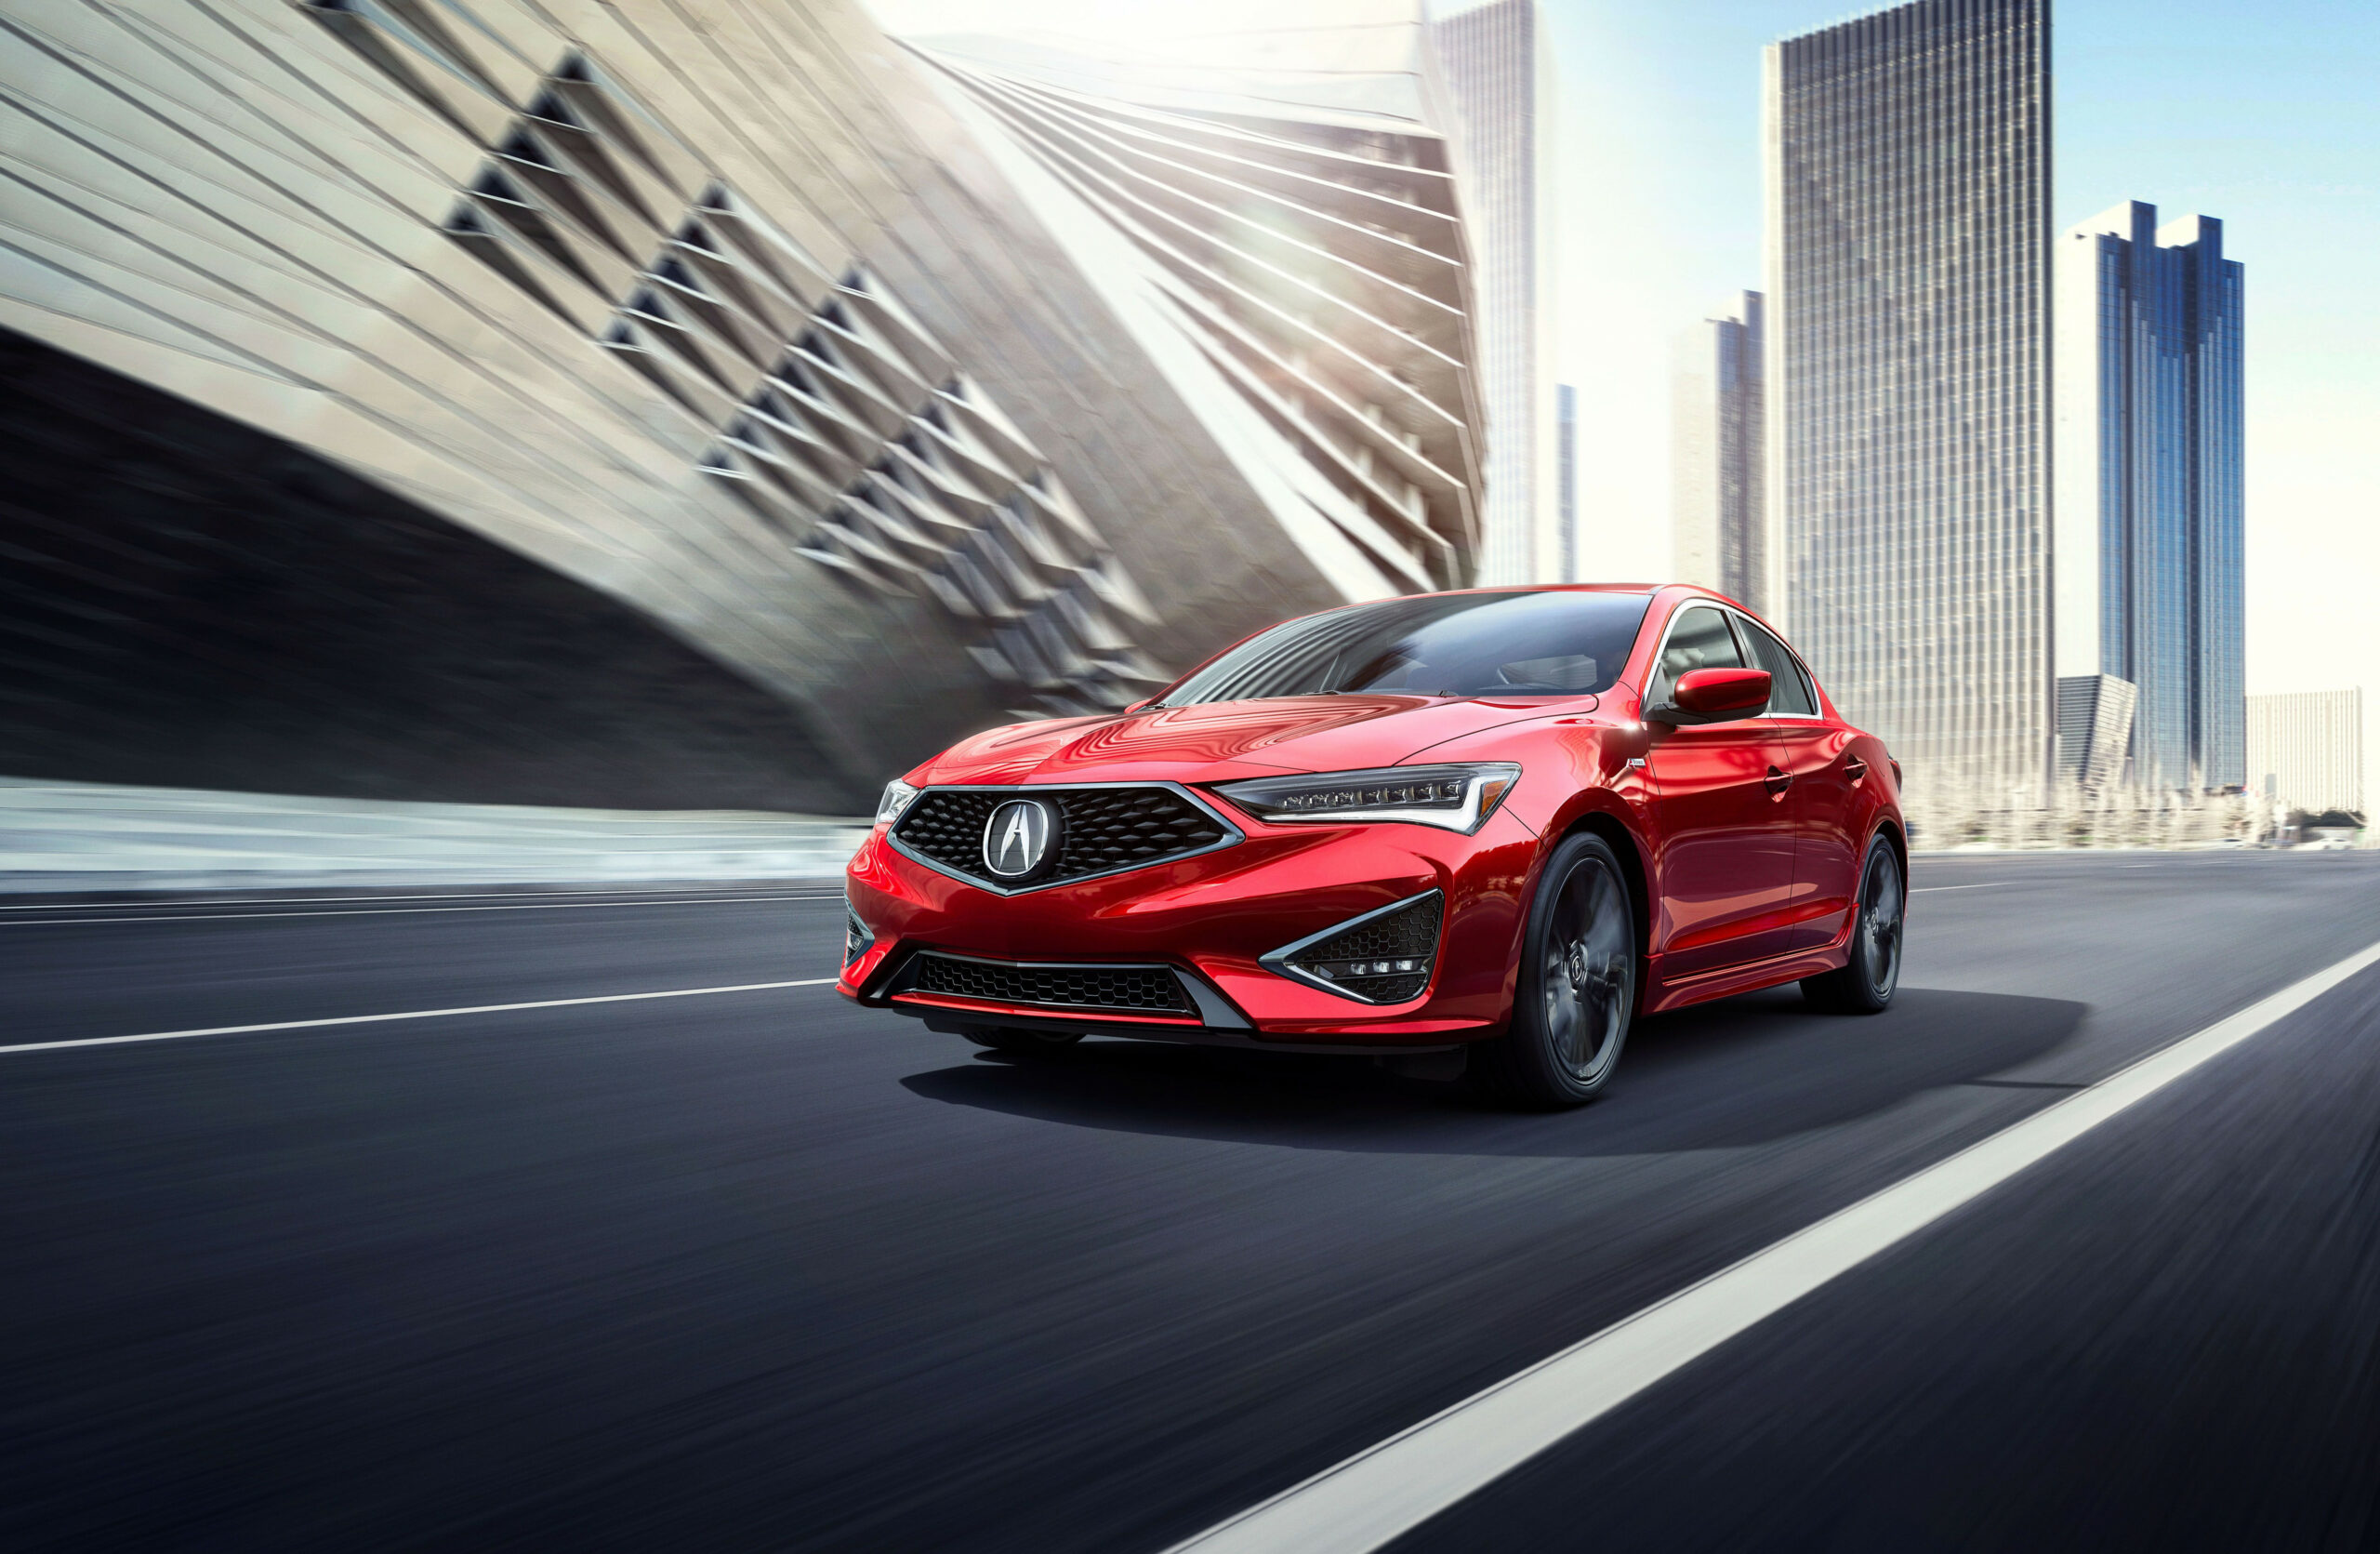 6 Acura ILX Review, Pricing, and Specs - 2020 acura ilx interior